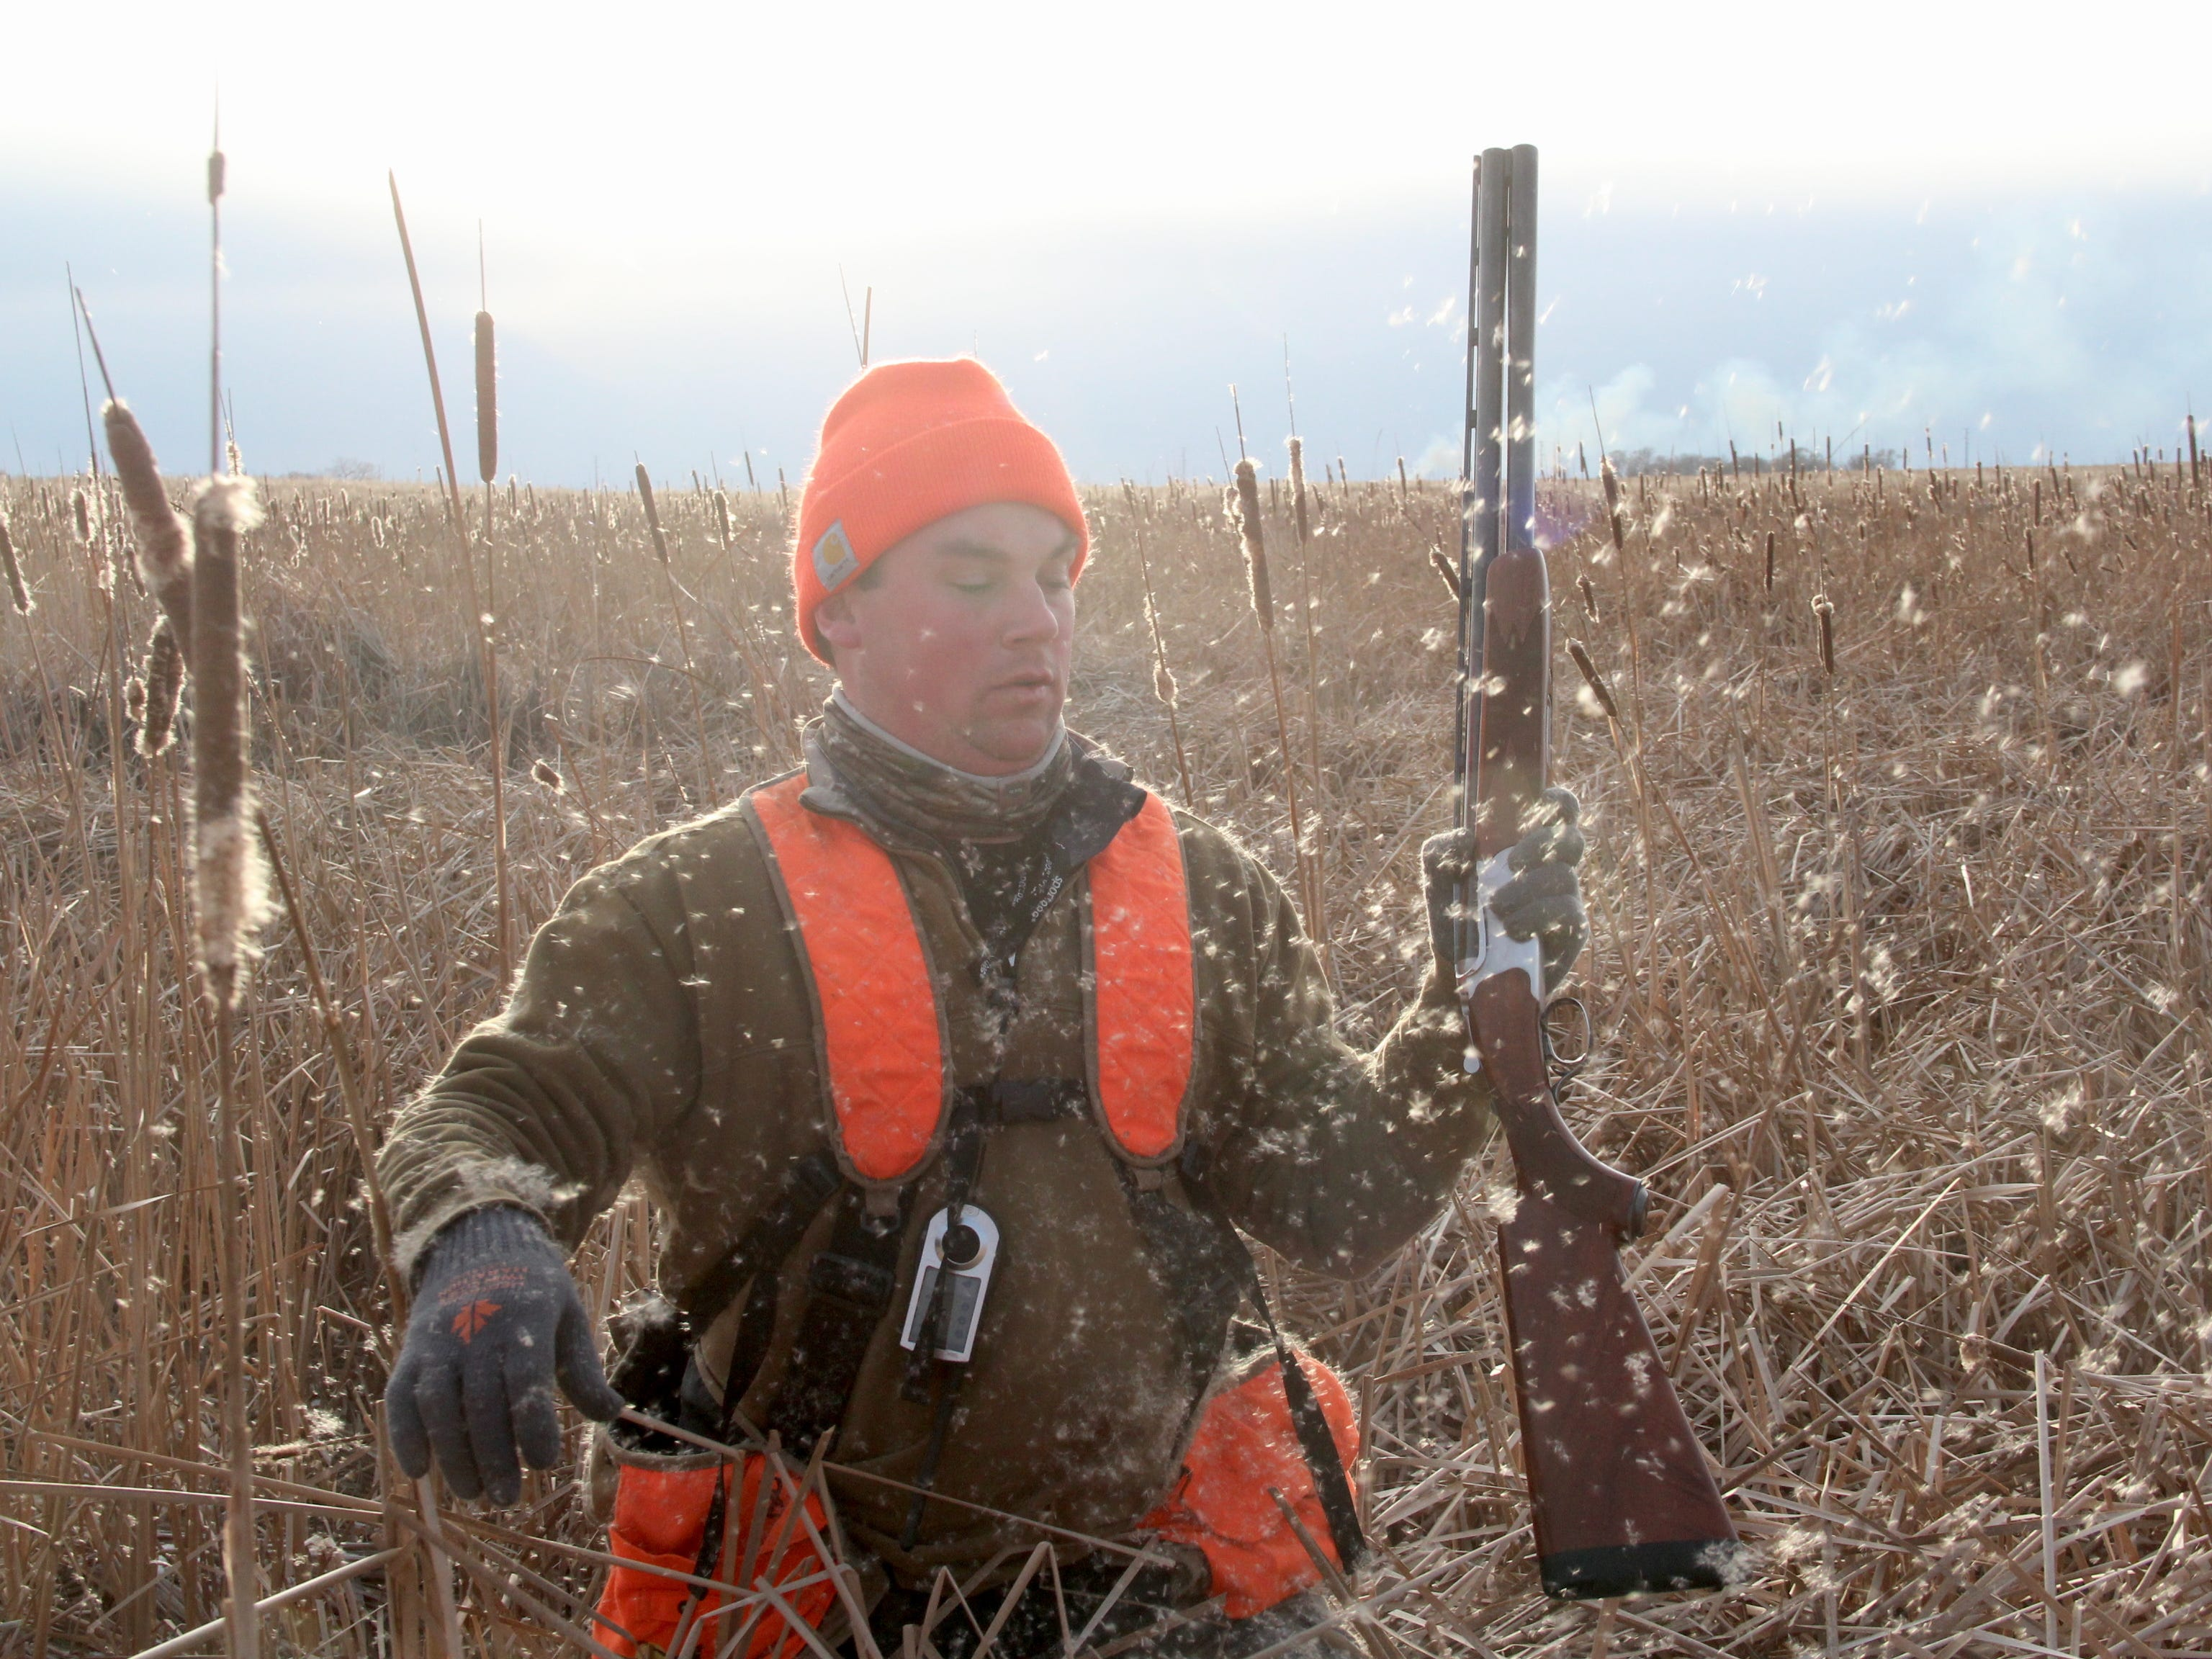 Cattail seeds float through the air as Jared Wiklund, a public relations specialist with Pheasants Forever, pushes through a slough on a pheasant hunt near Aberdeen, South Dakota.